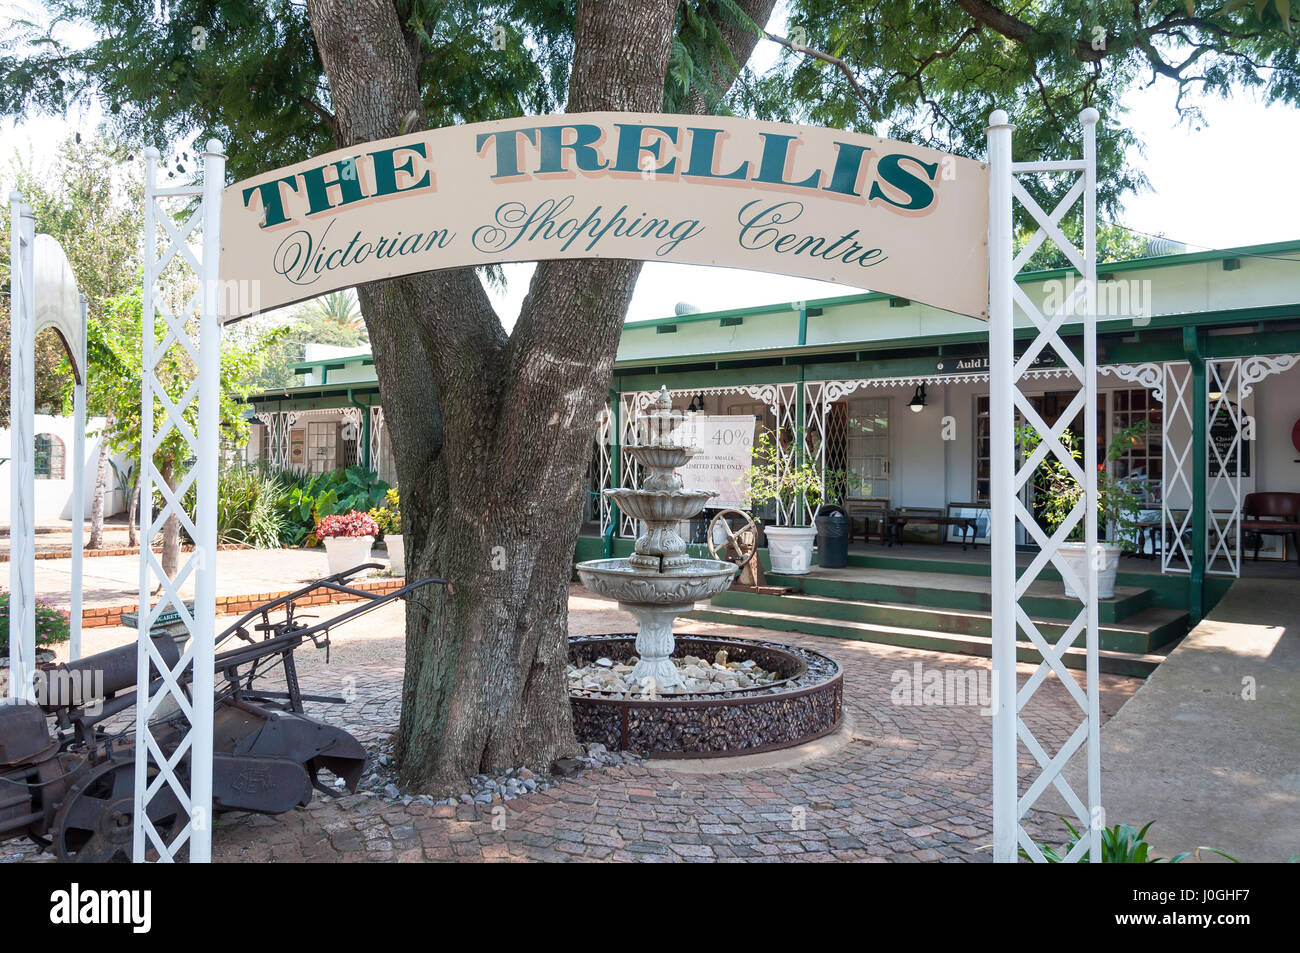 The Trellis Antiques Centre, High Road, Brentwood Park, Benoni, East Rand, Gauteng Province, Republic of South Africa - Stock Image